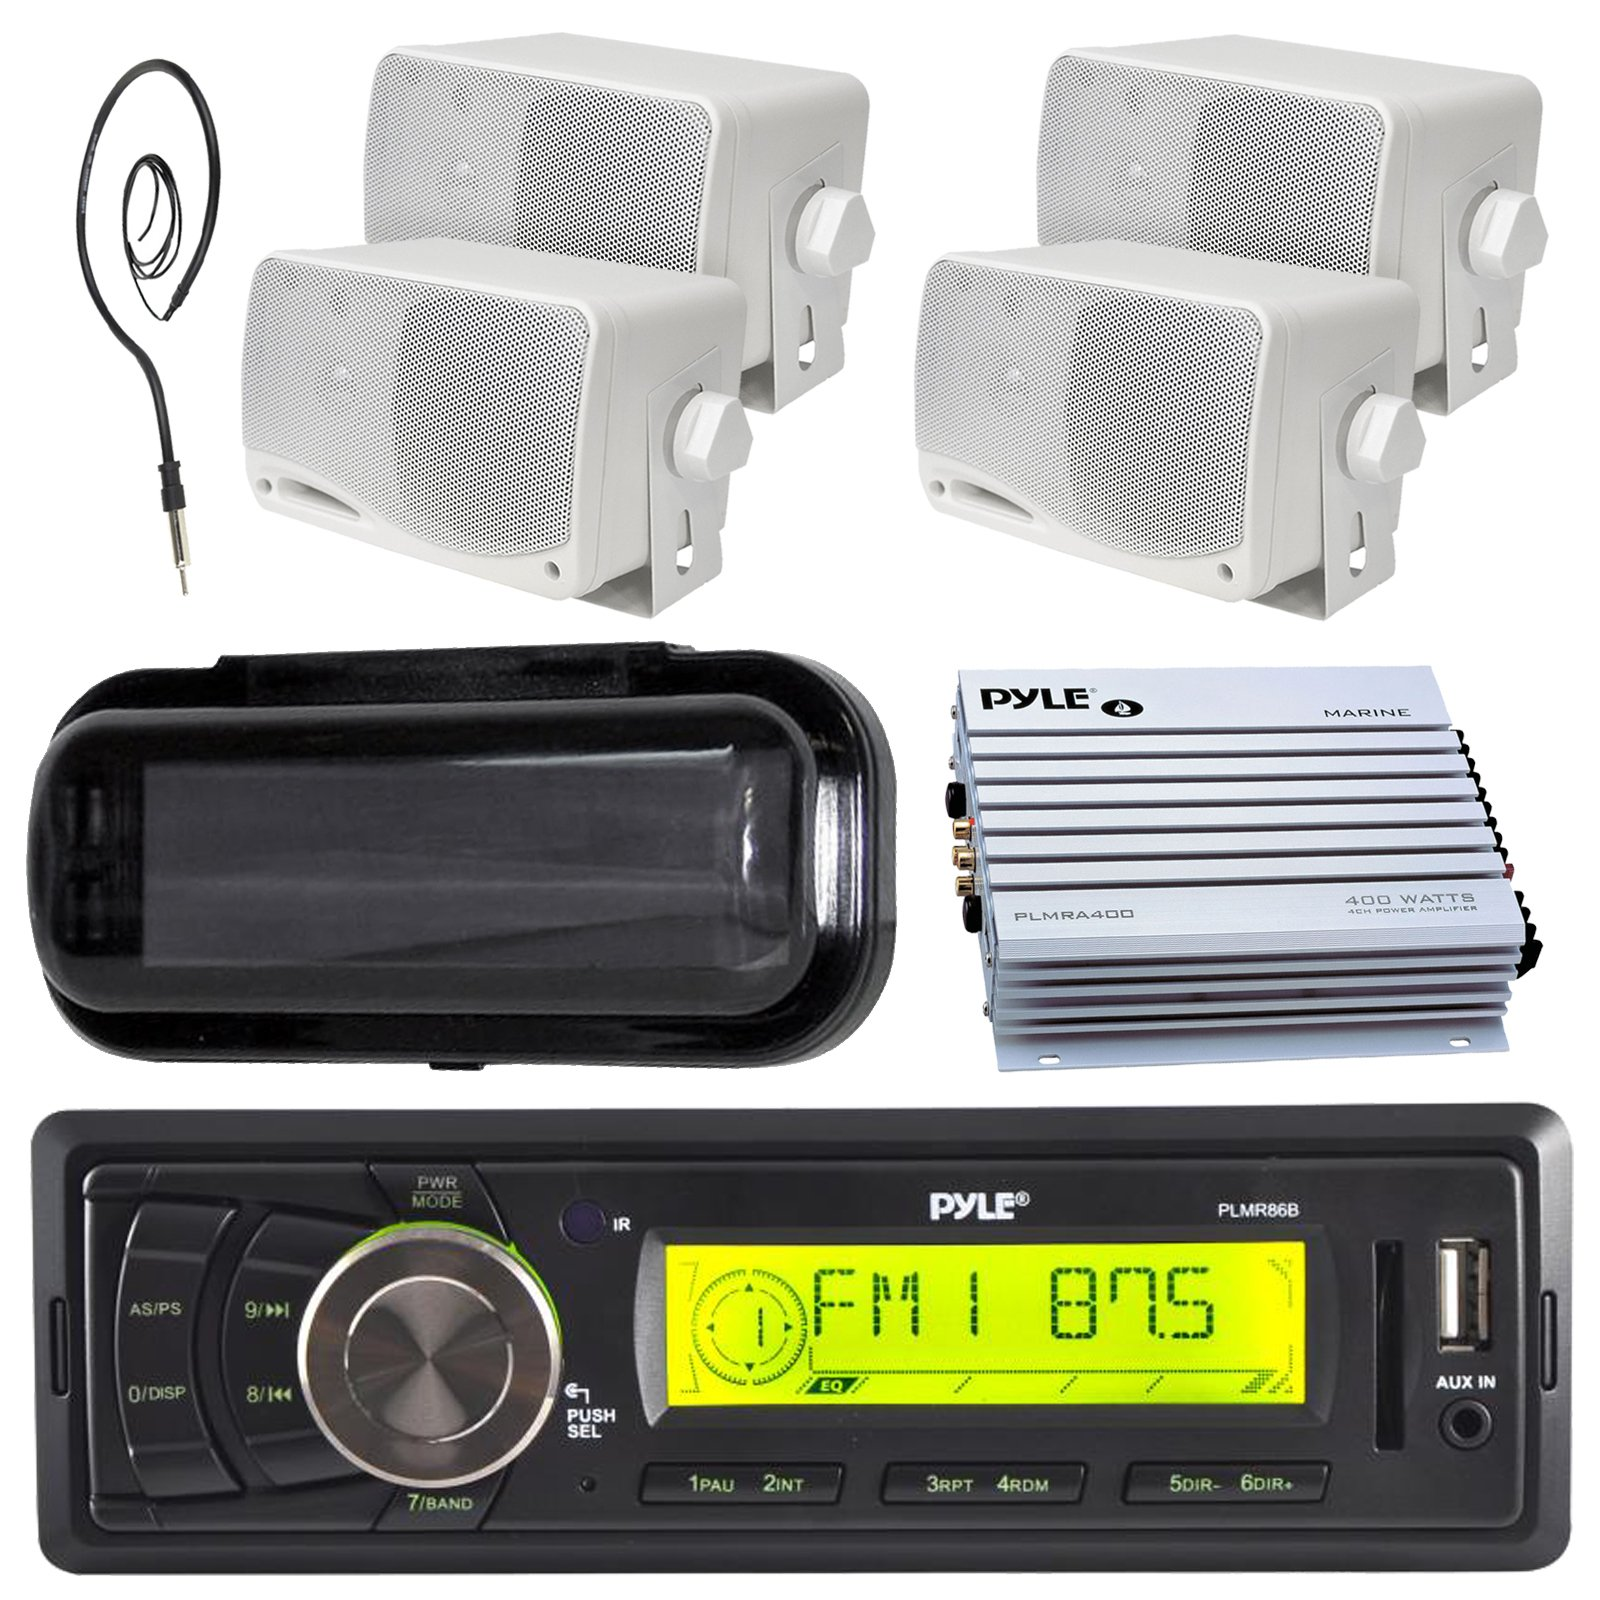 New Pyle Marine audio stereo player 200W indash Marine media AM/FM receiver 4- 3.5 box marine speakers, 400 watt waterproof amplifier, antenna with splash proof stereo cover (Black)